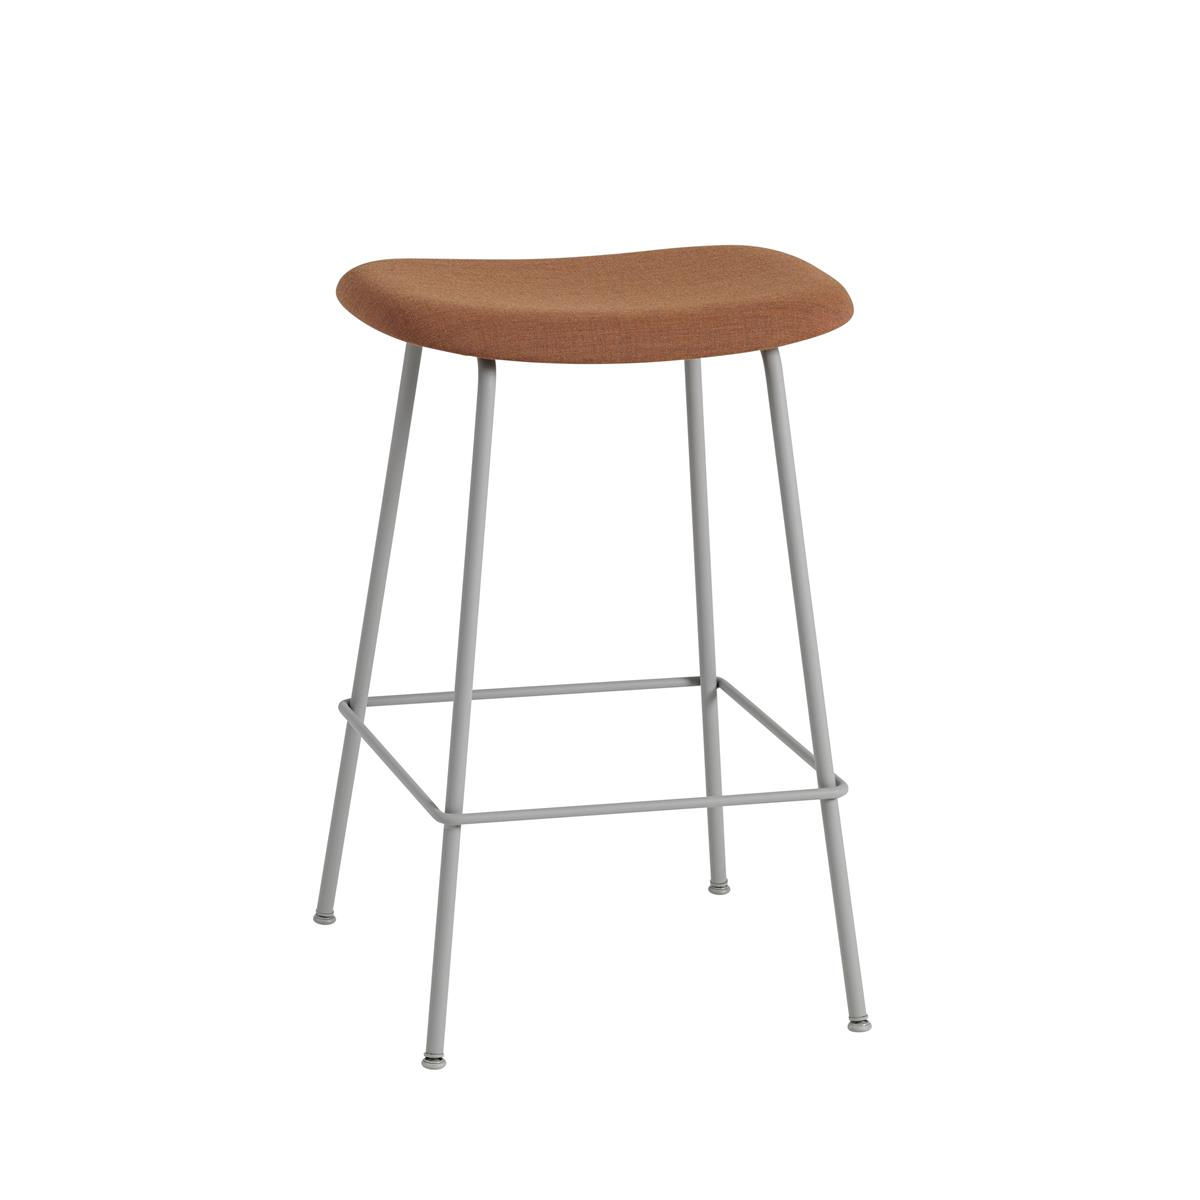 Fiber Bar Stool / Tube Base H65 - Kvadrat Remix & Grey